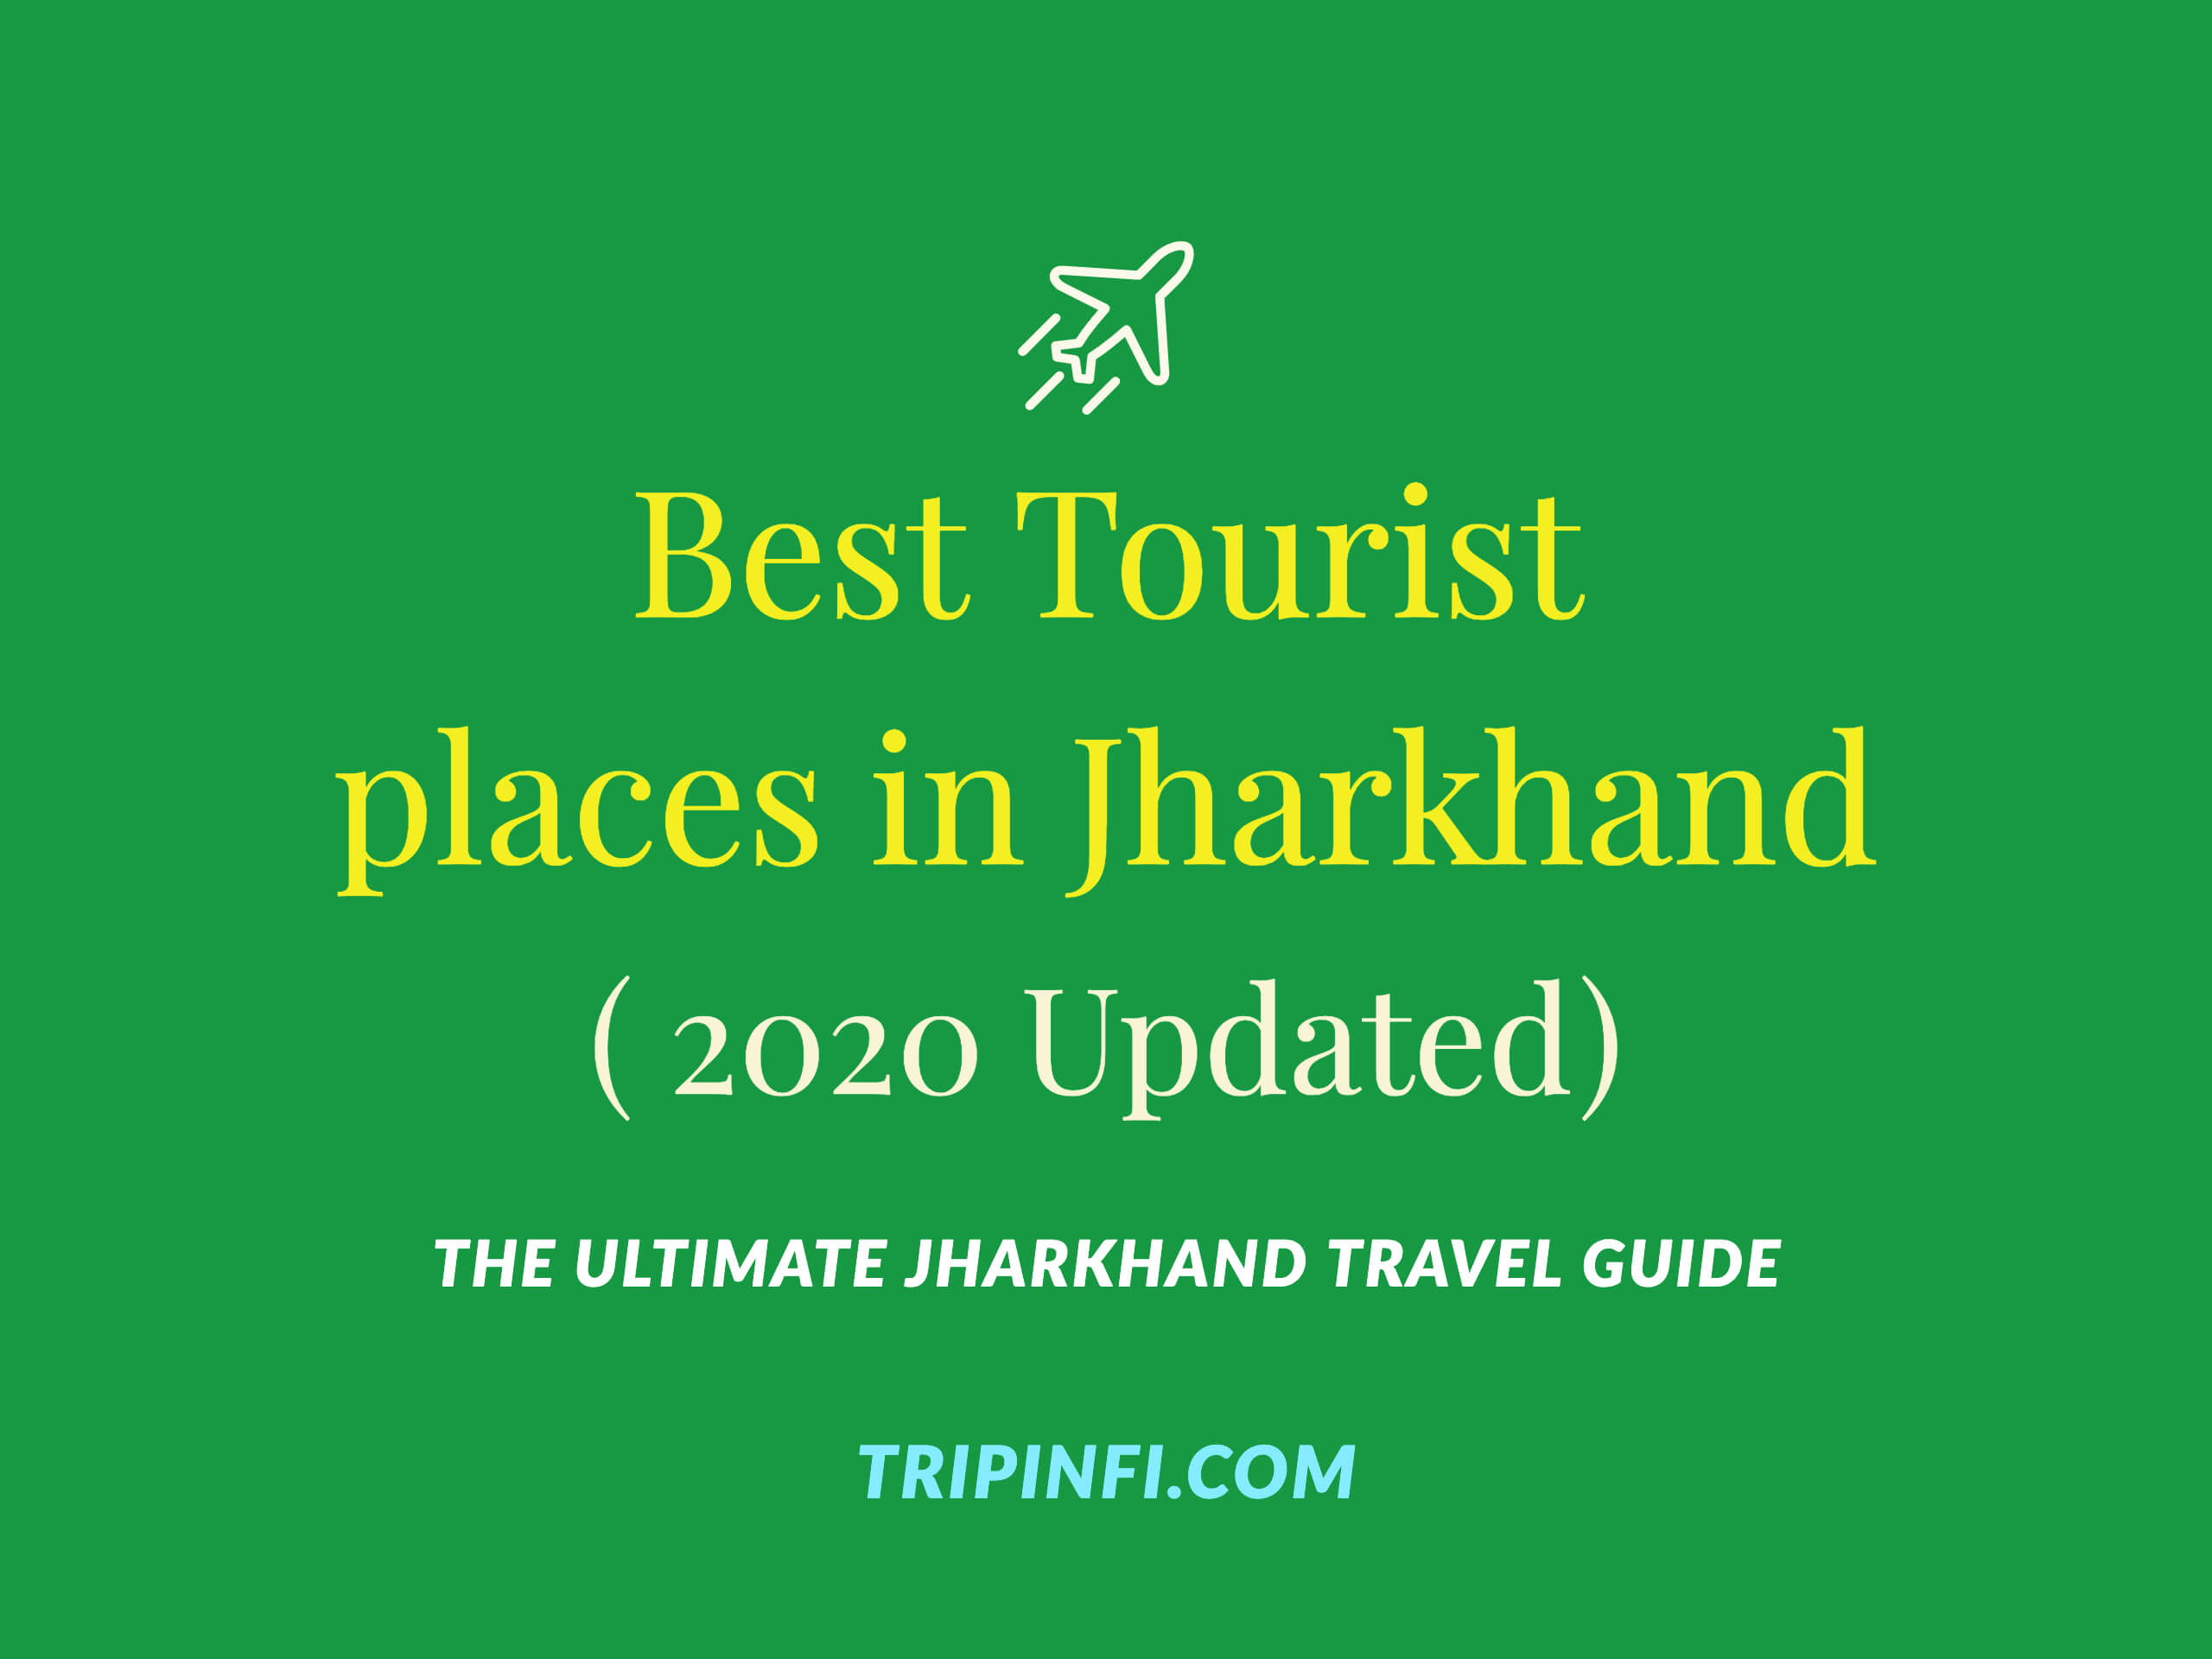 travel guide of jharkhand in 2020